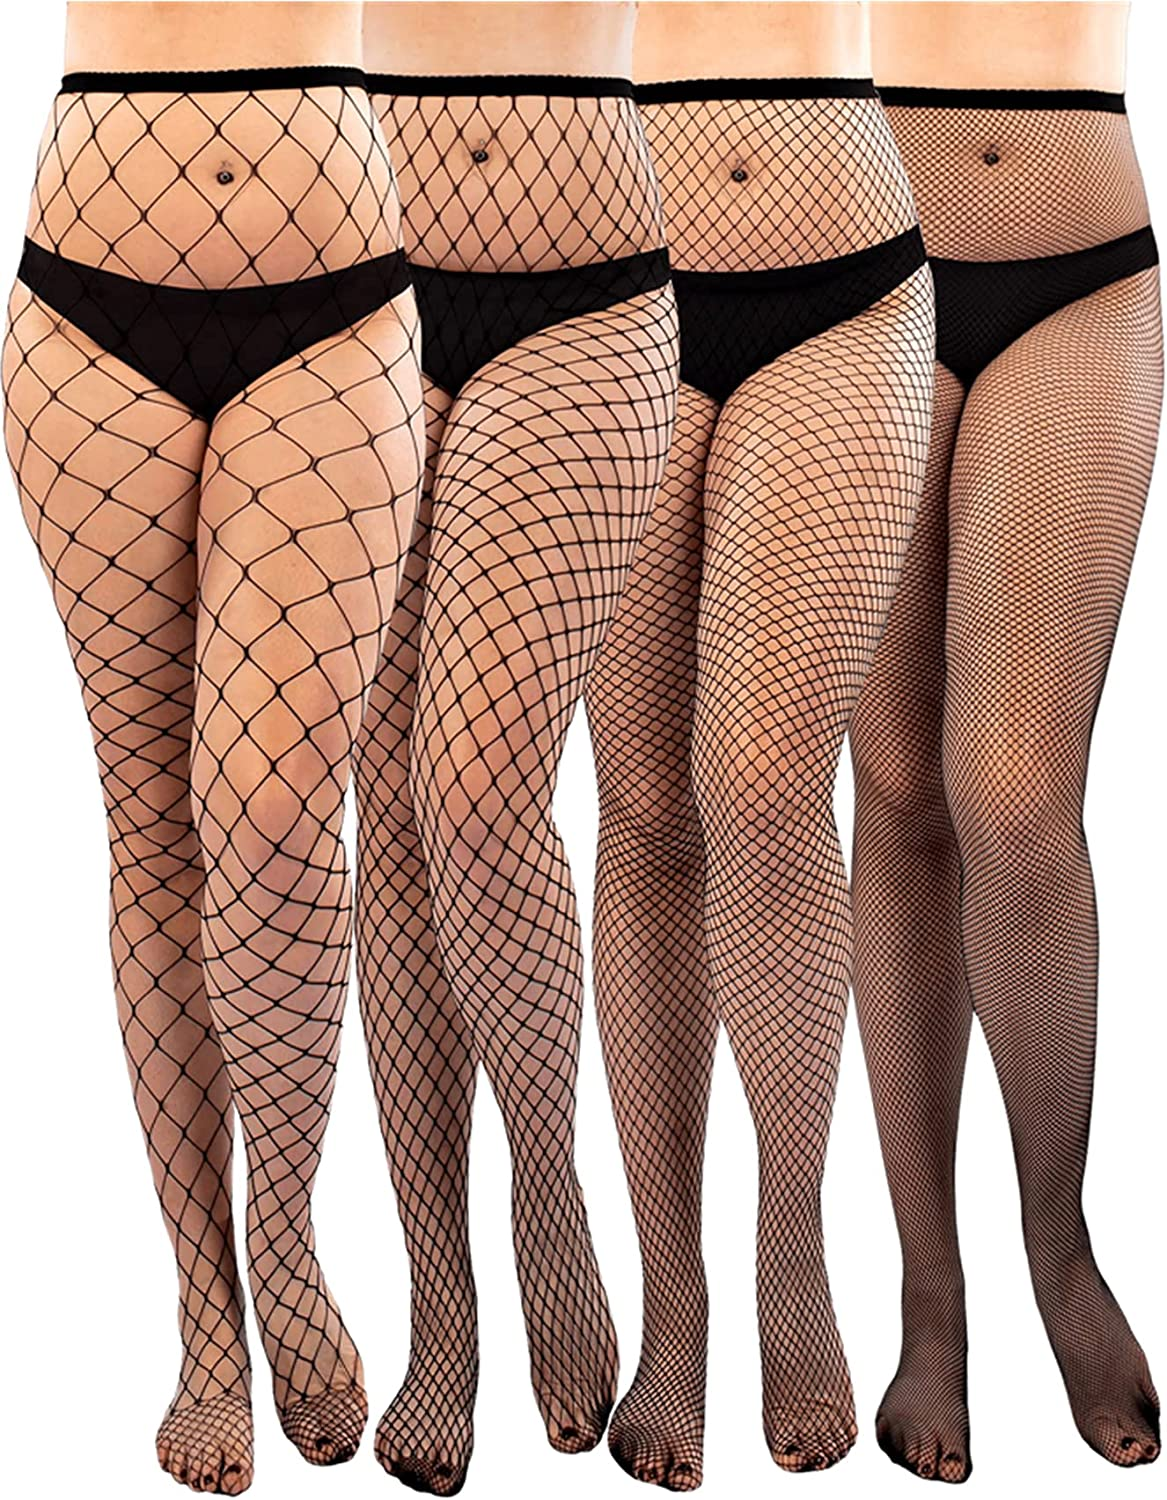 SHEIN Women's 4 Pairs Plus Size Fishnet Stockings Hollow Out Tights Pantyhose Leggings